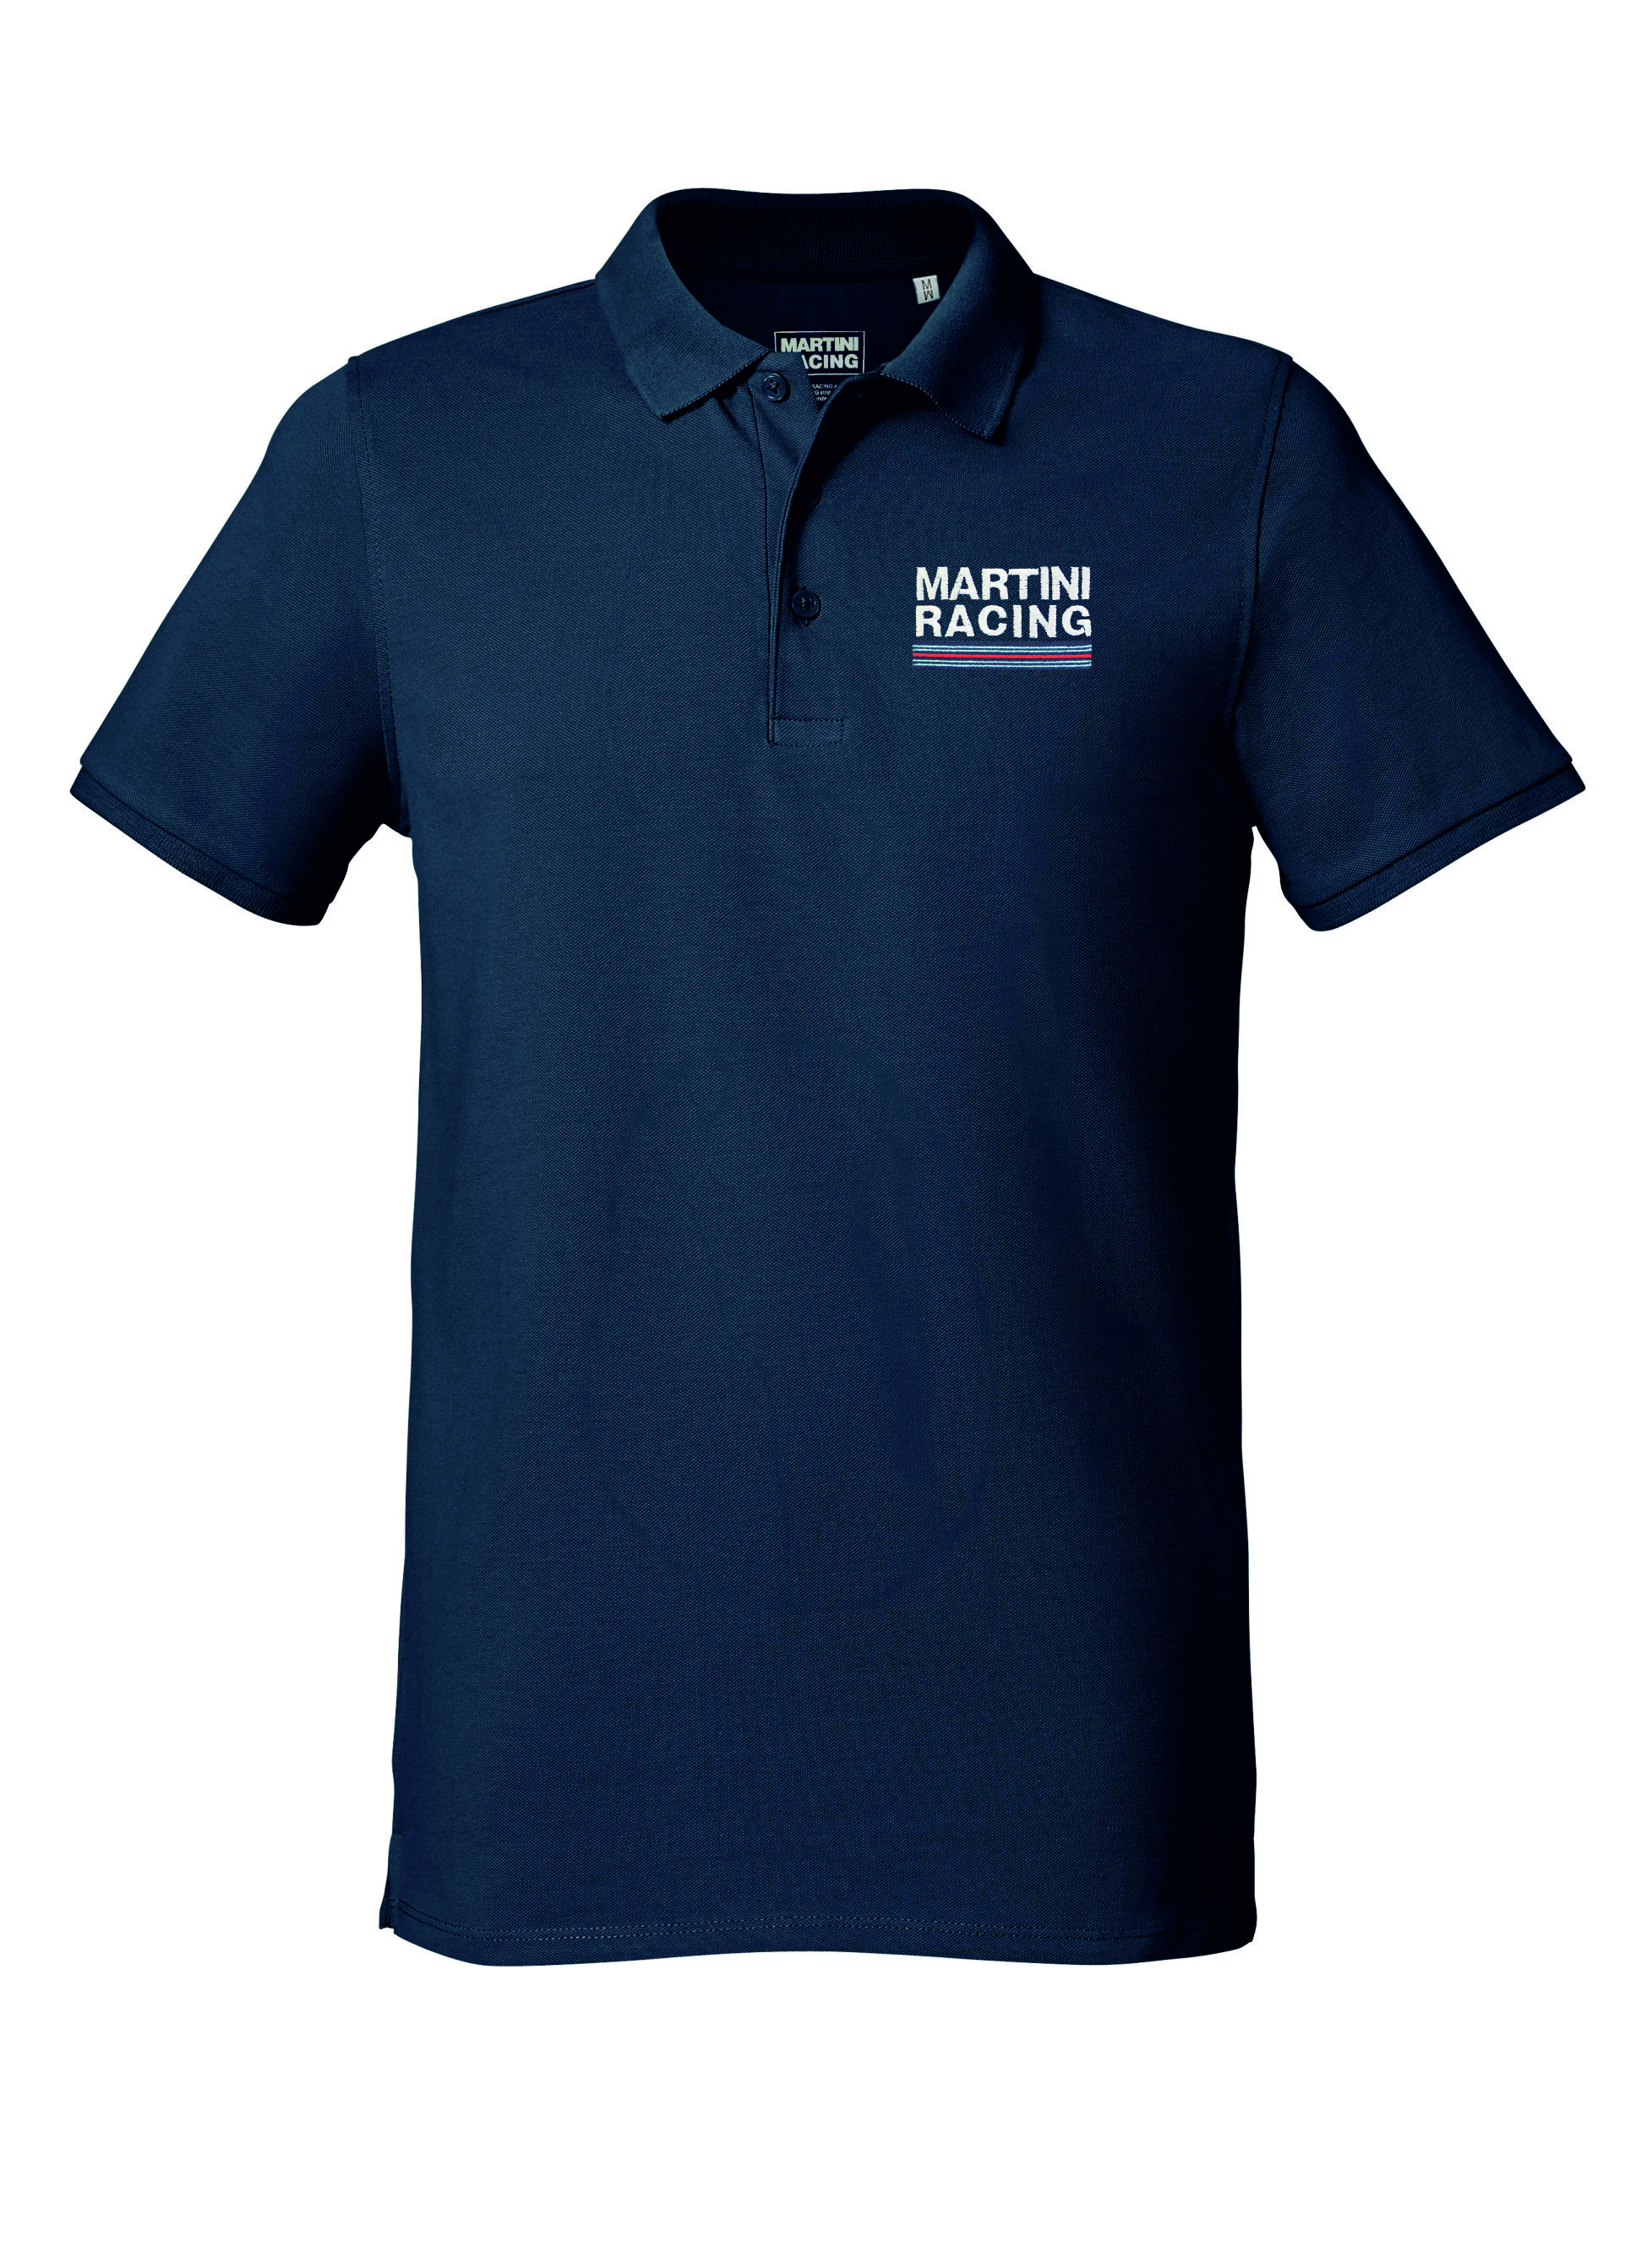 MARTINI RACING Sportline Polo navy